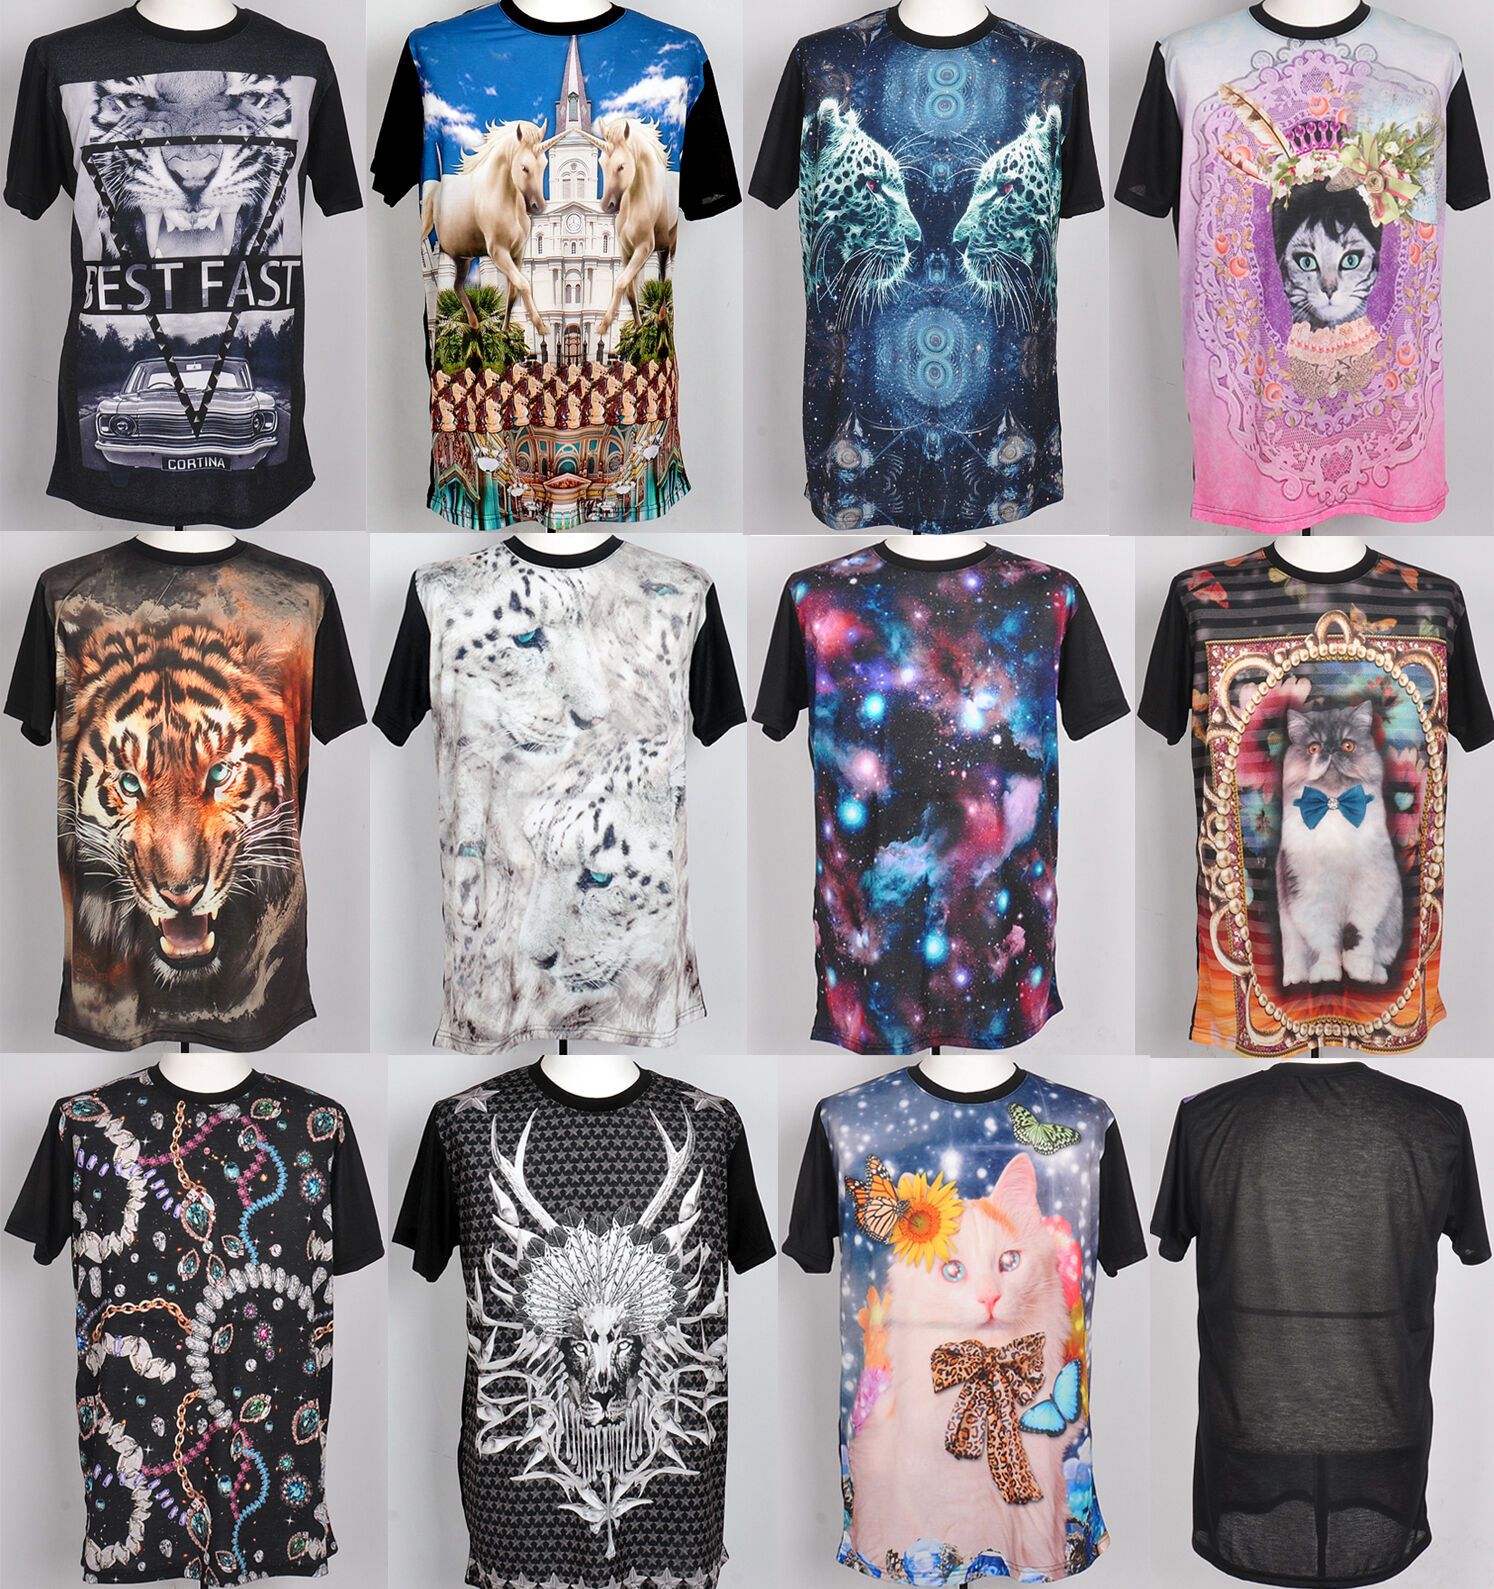 Unisex galaxy stellar cat printed short sleeve t-shirts round neck top tee sz M